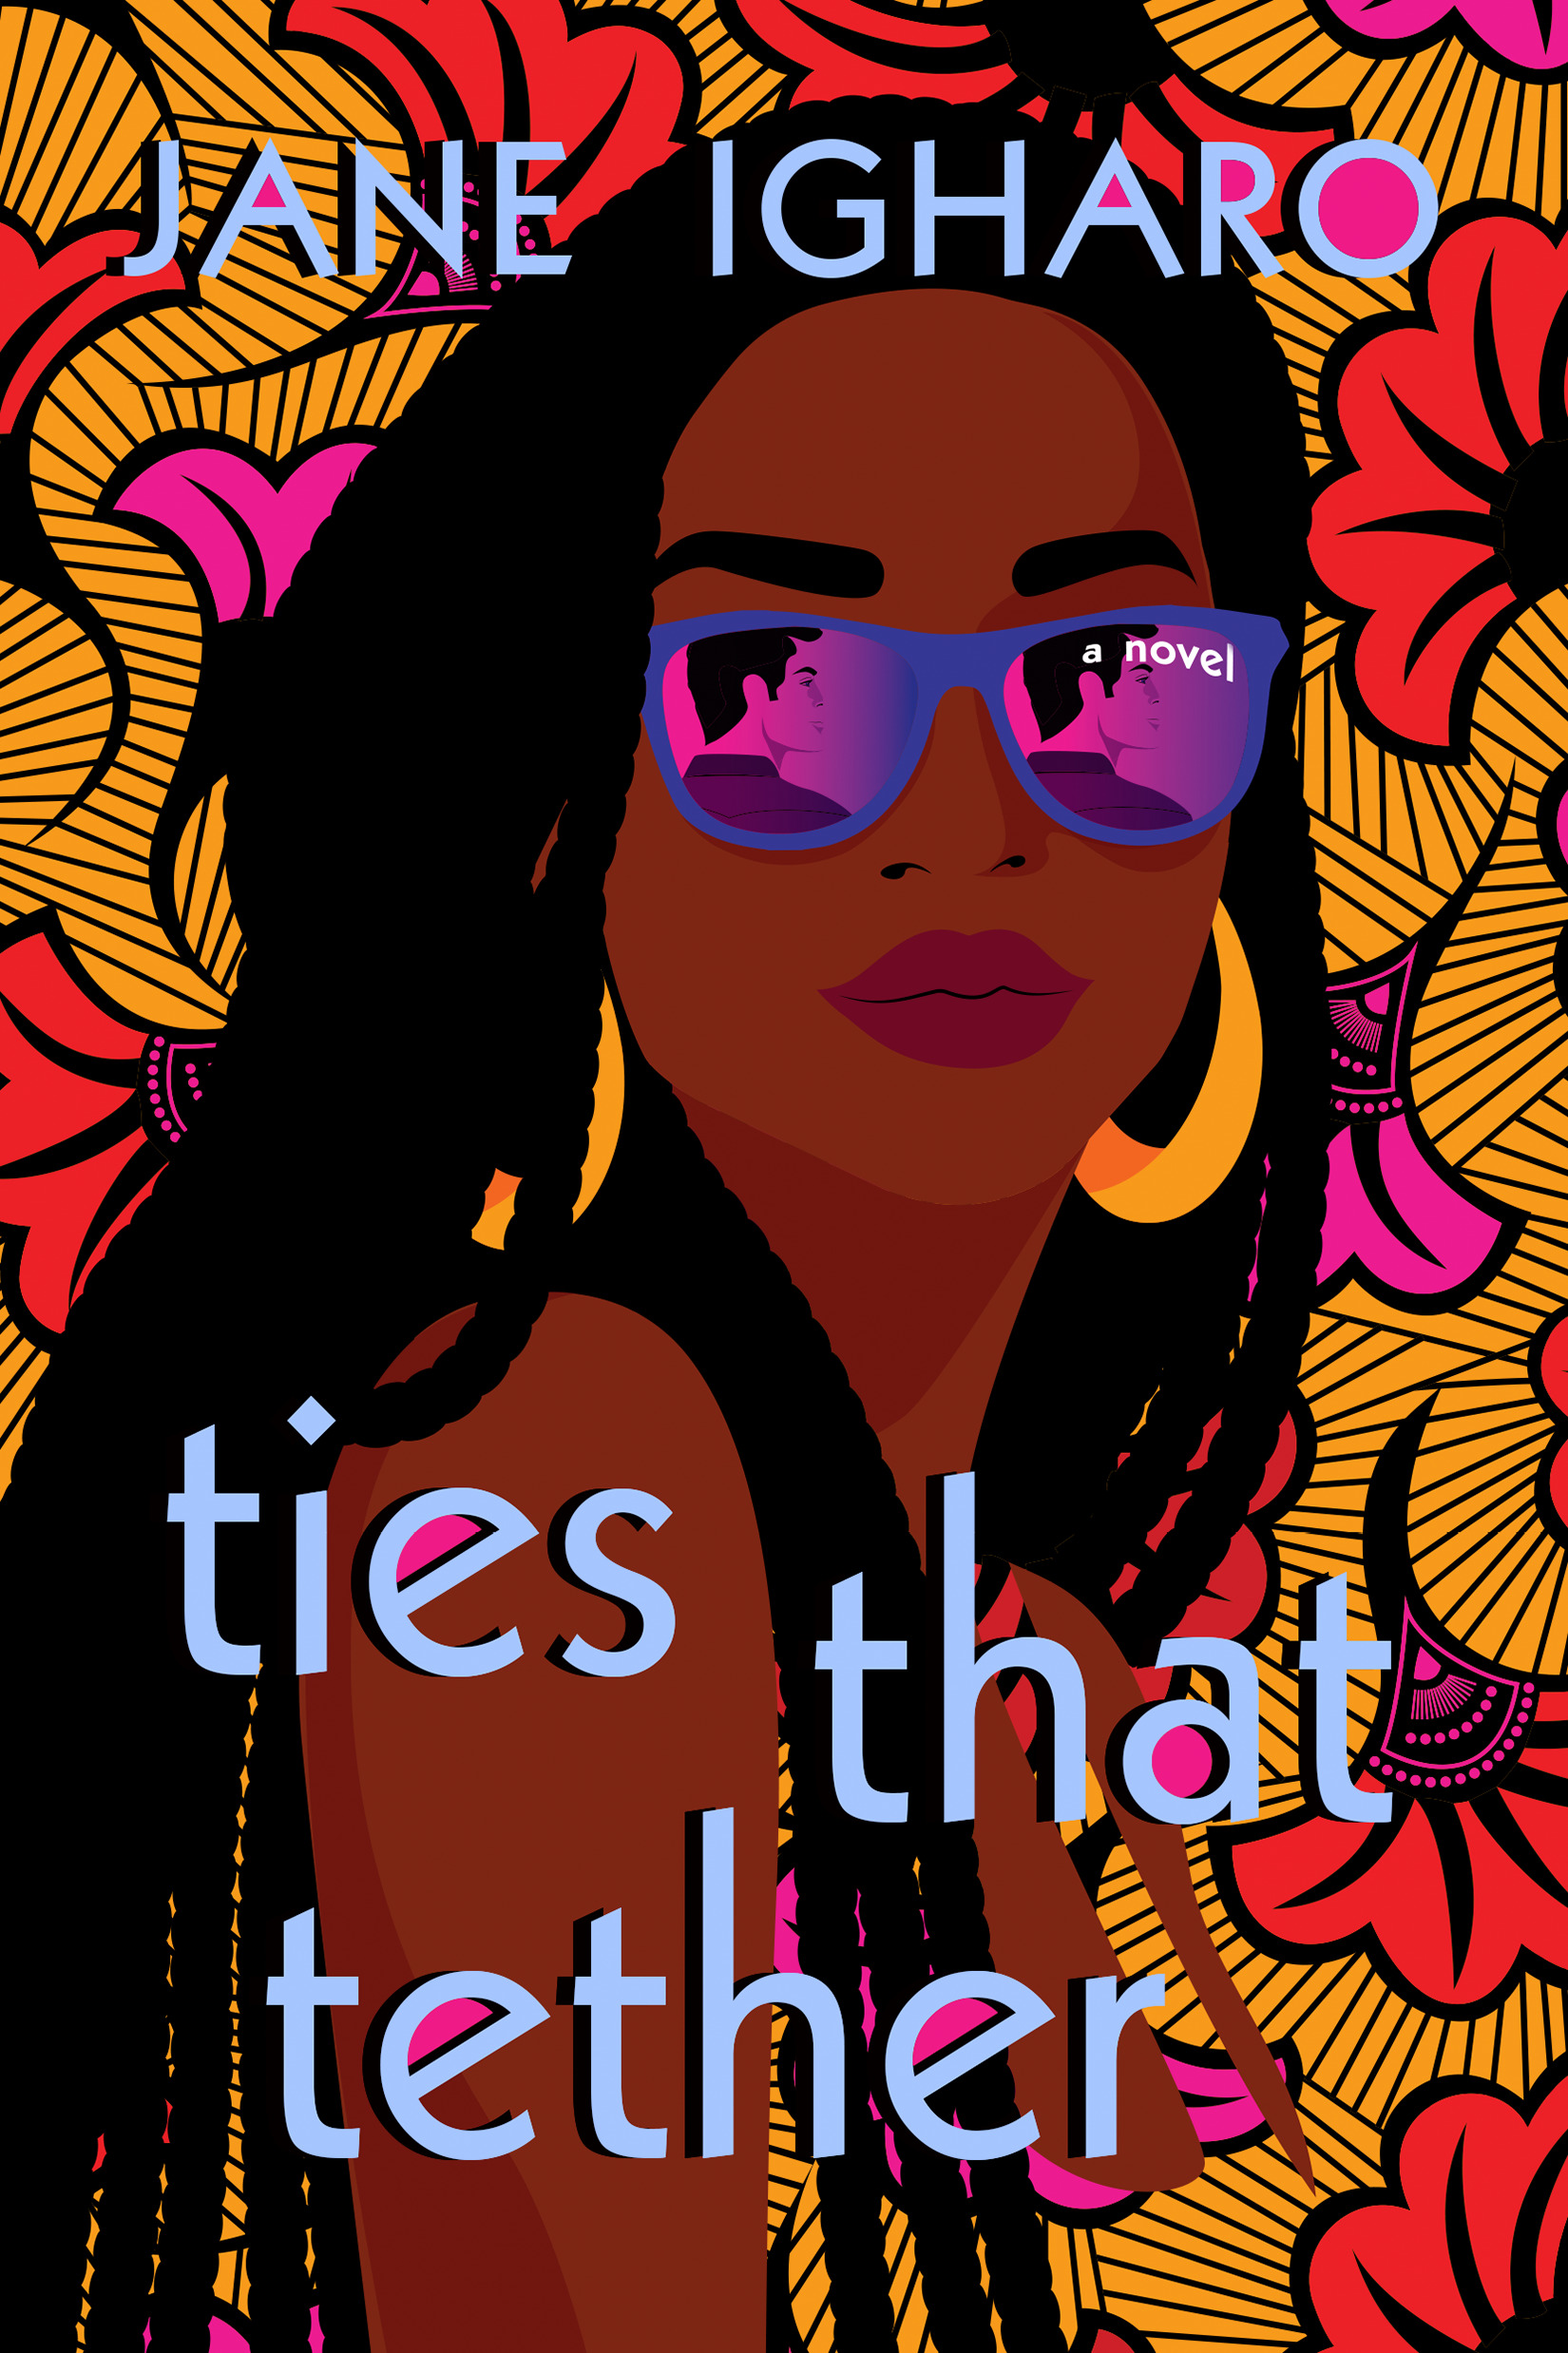 Ties That Tether By Jane Igharo Release Date? 2020 Contemporary Romance Releases